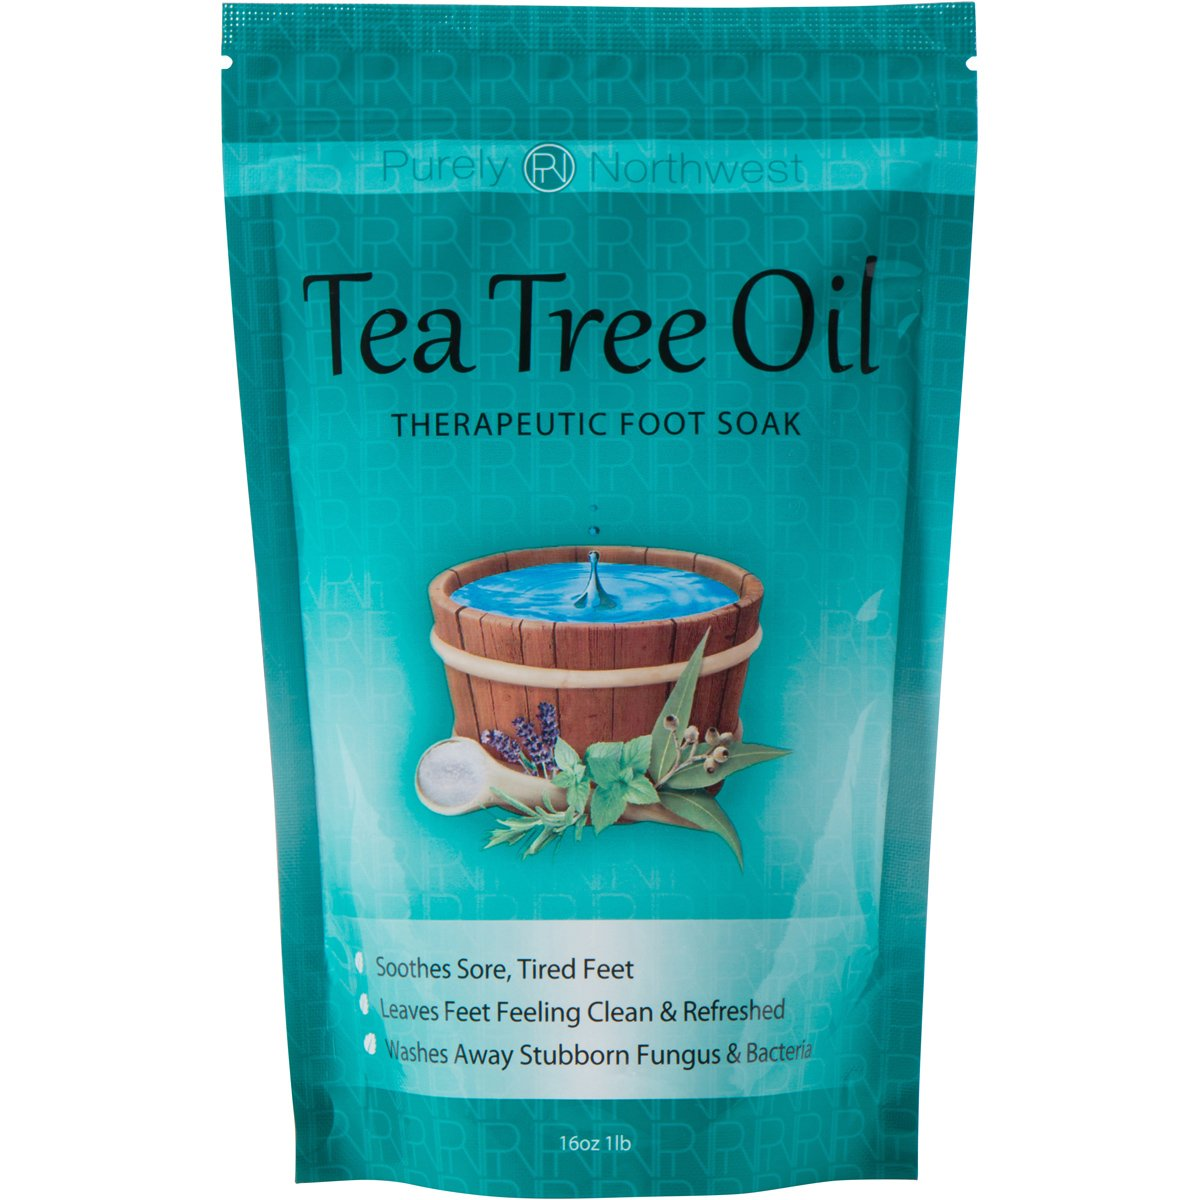 Tea Tree Oil Foot Soak With Epsom Salt, Helps Soak Toenail Fungus, Athletes Foot & Stubborn Foot Odor – Softens Calluses & Soothes Sore Tired Feet -16oz